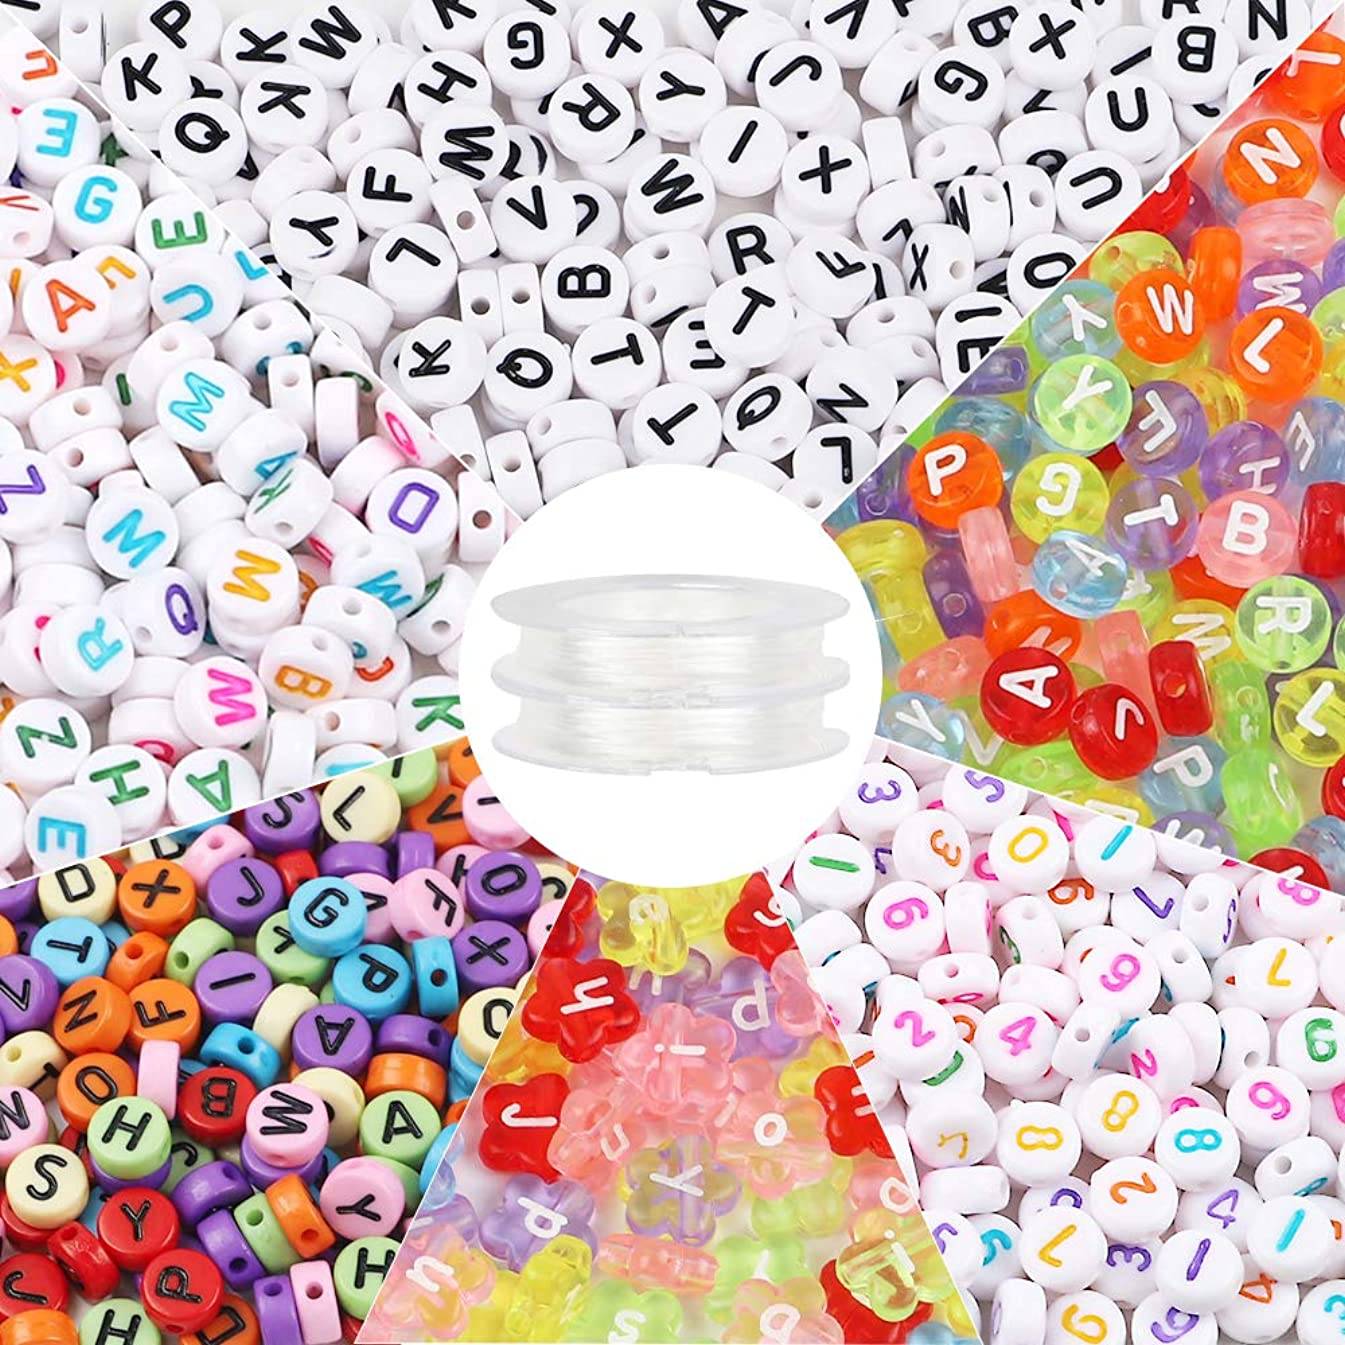 Quefe 1600pcs Letter Beads Including 1500pcs 4x7mm Letter Beads of 5 Styles and 100pcs 4x12mm Flower-Shaped Letter Beads, 18meters Elastic String Cord for Necklaces, Bracelets, Key Chains, etc.